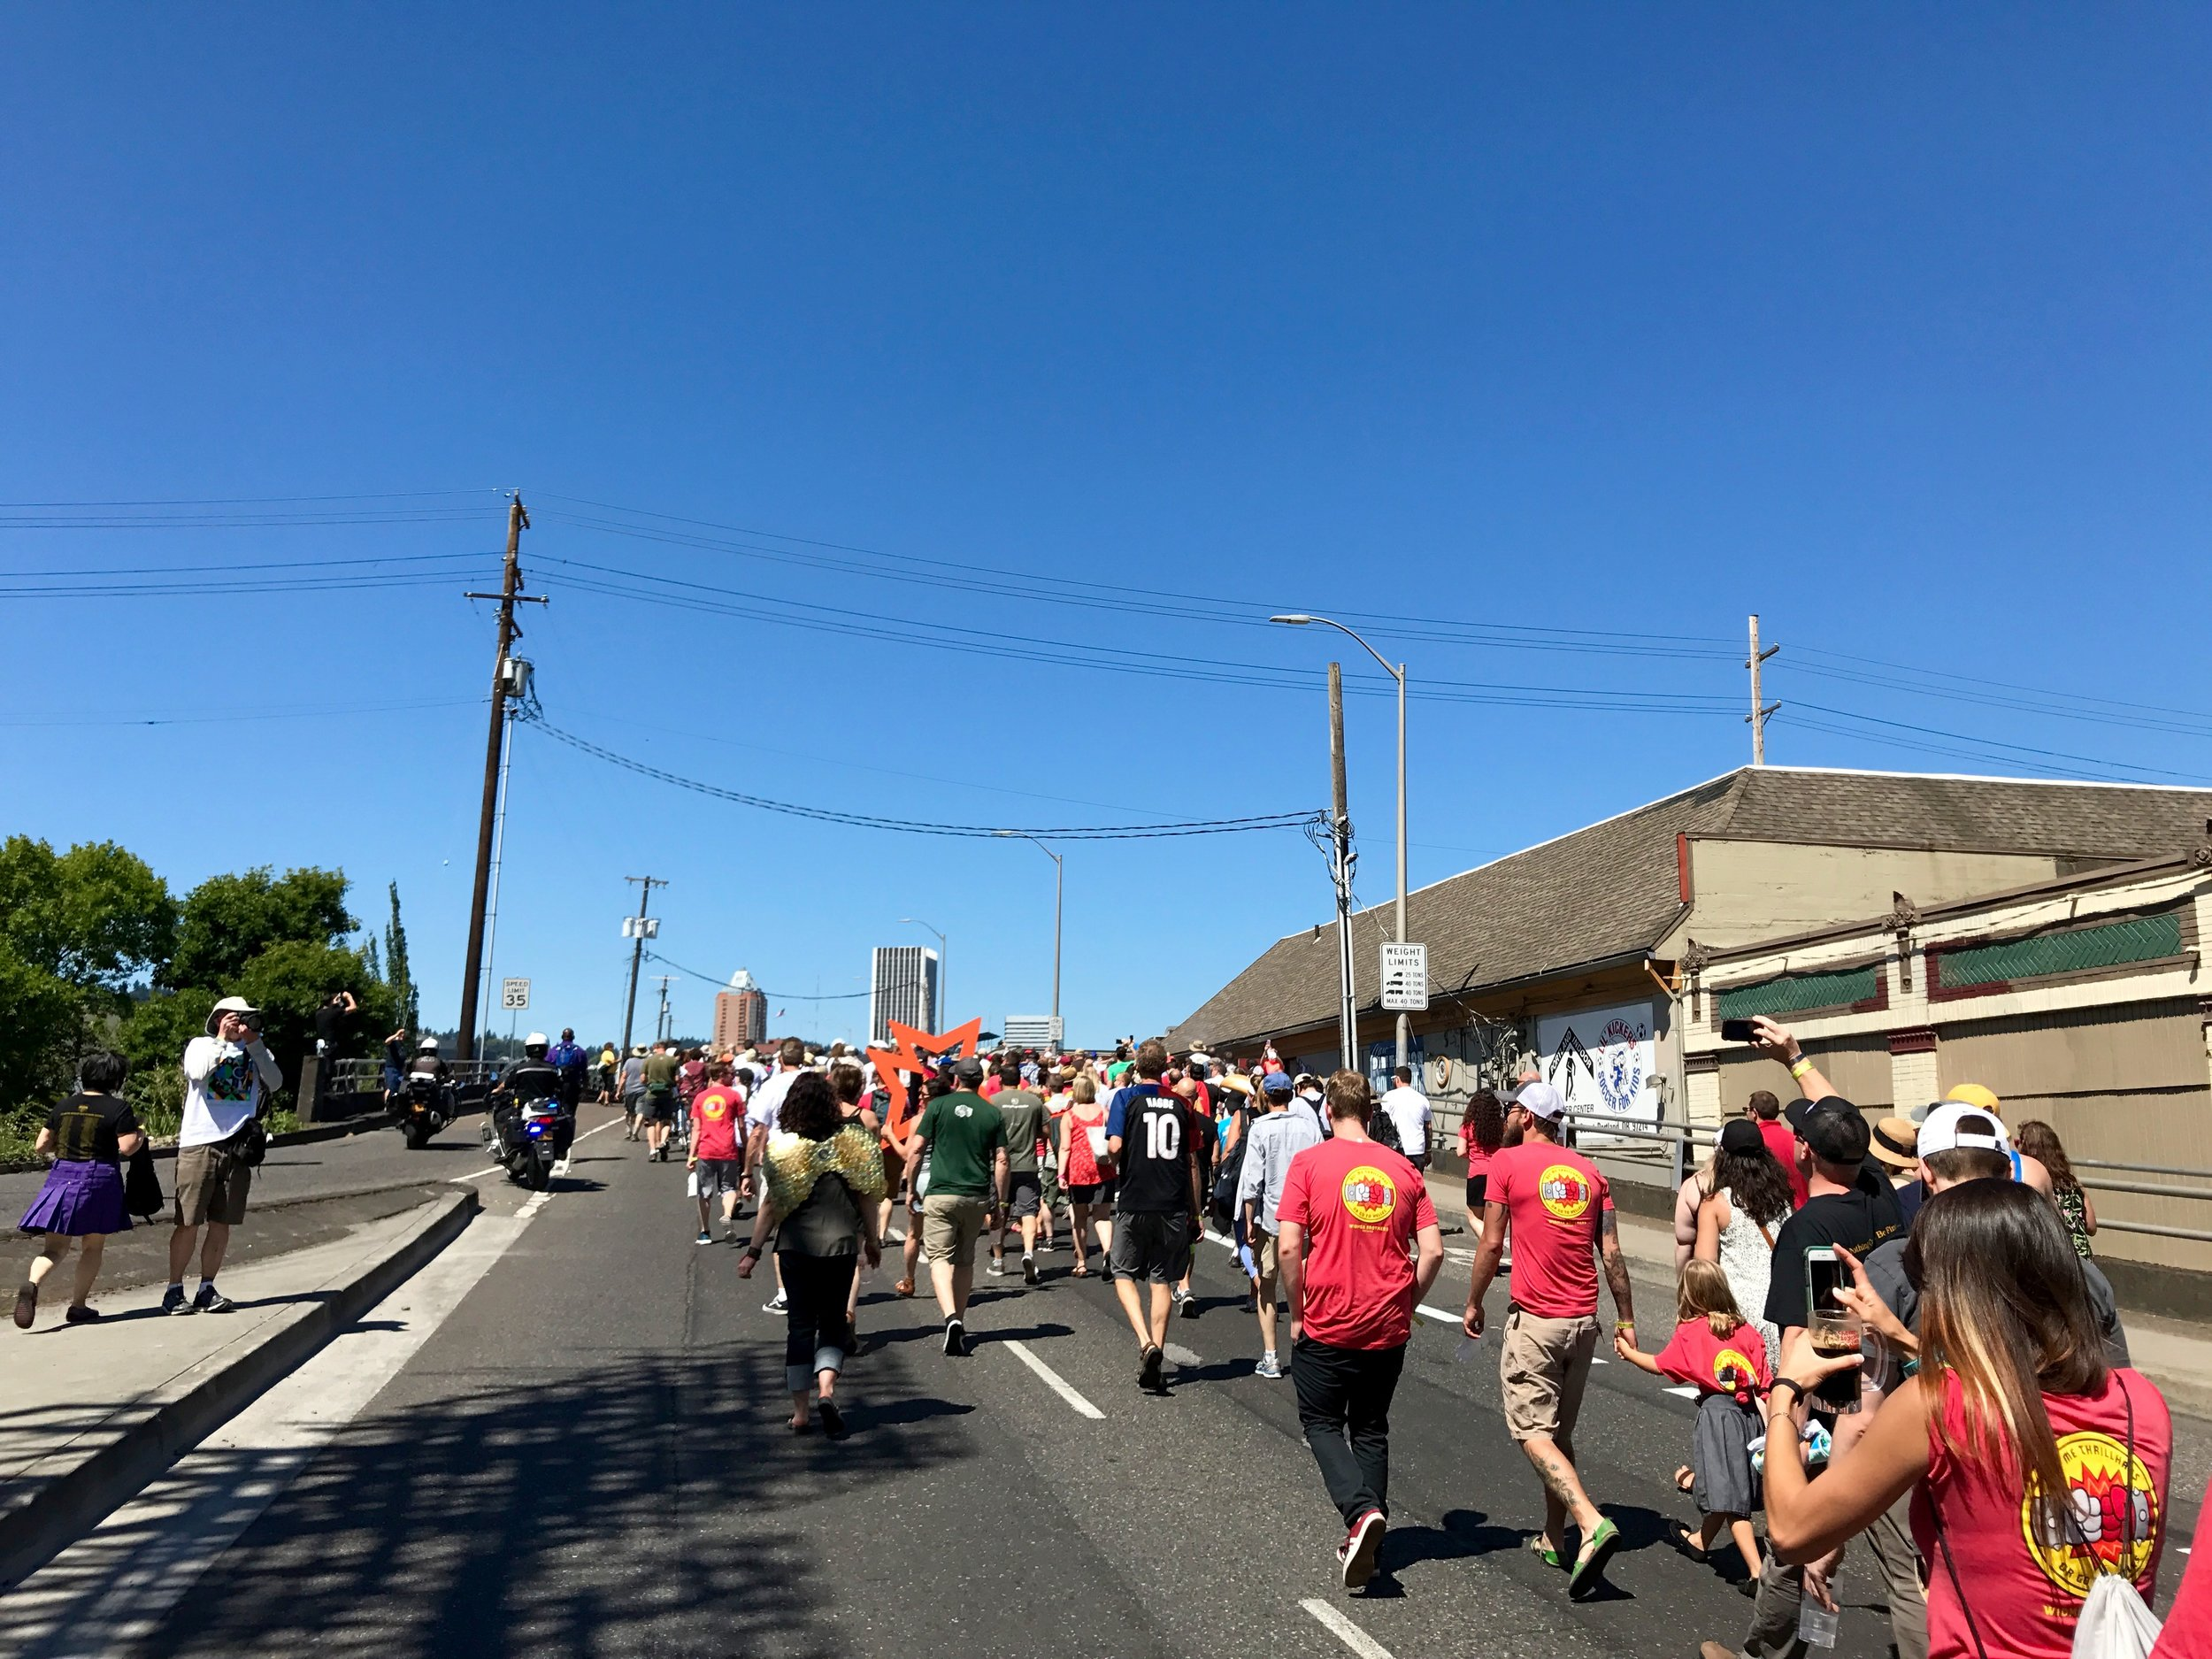 Walking over the Hawthorne bring during the parade